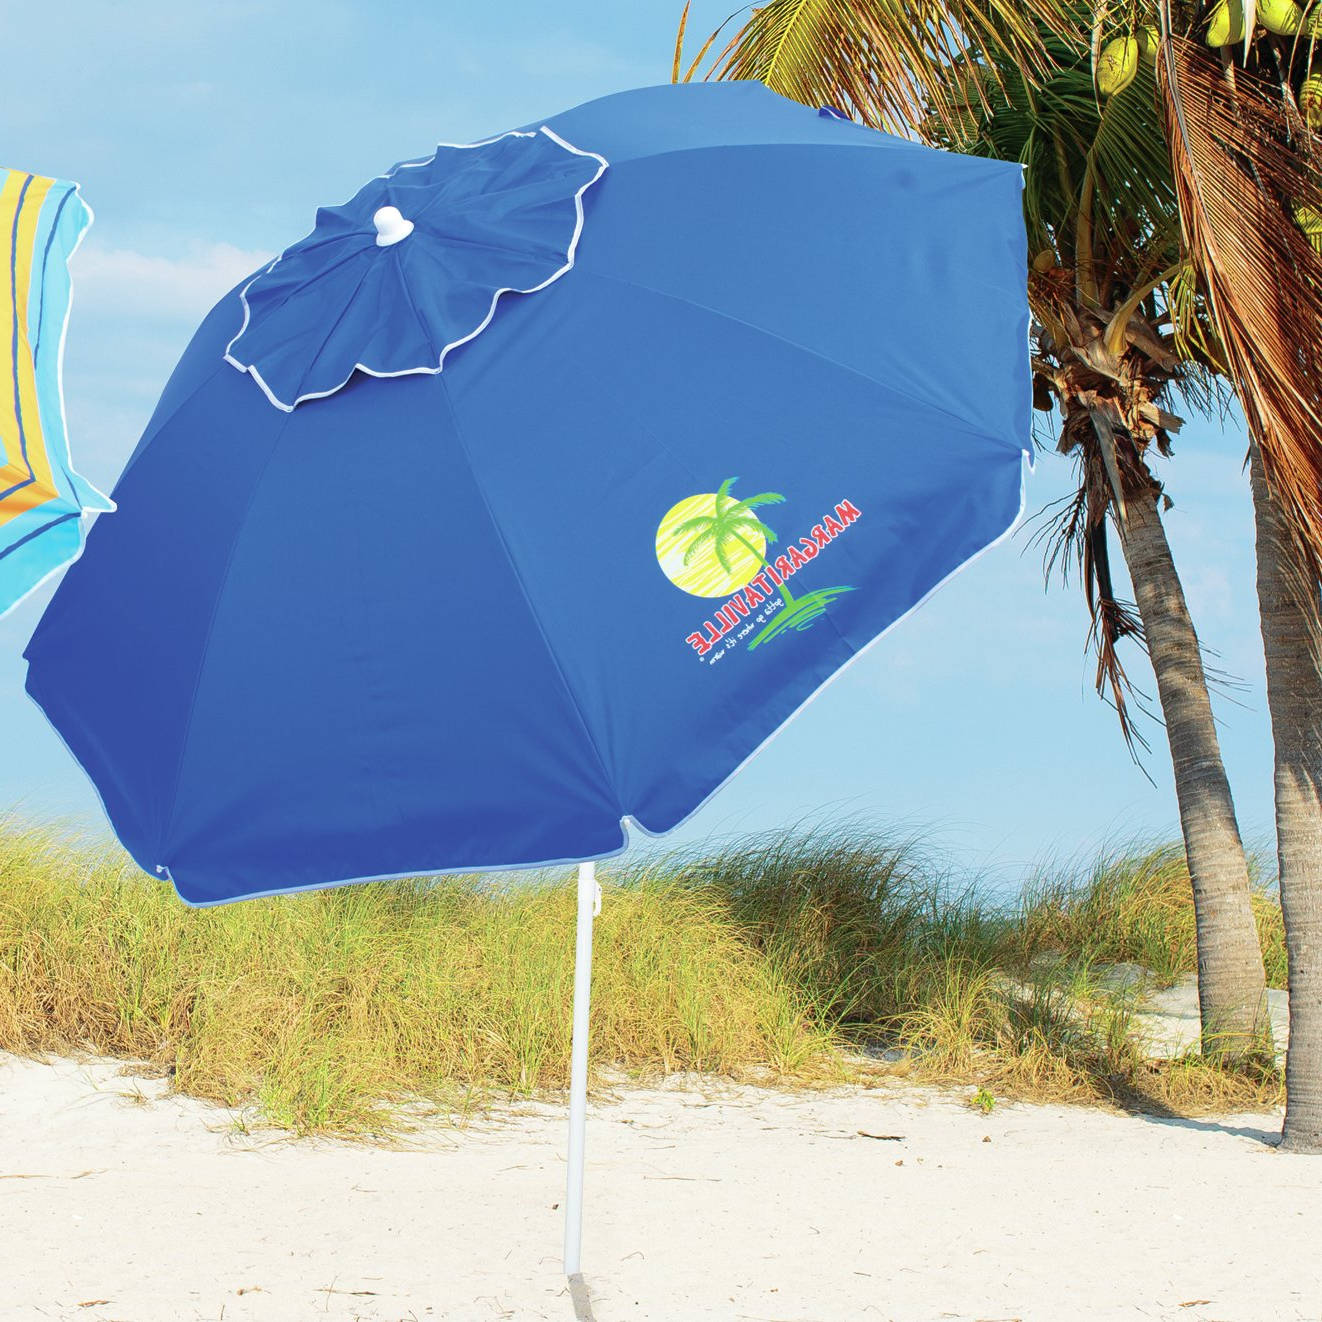 Margaritaville Green And Blue Striped Beach With Built In Sand Anchor Umbrellas Regarding Latest (View 5 of 20)